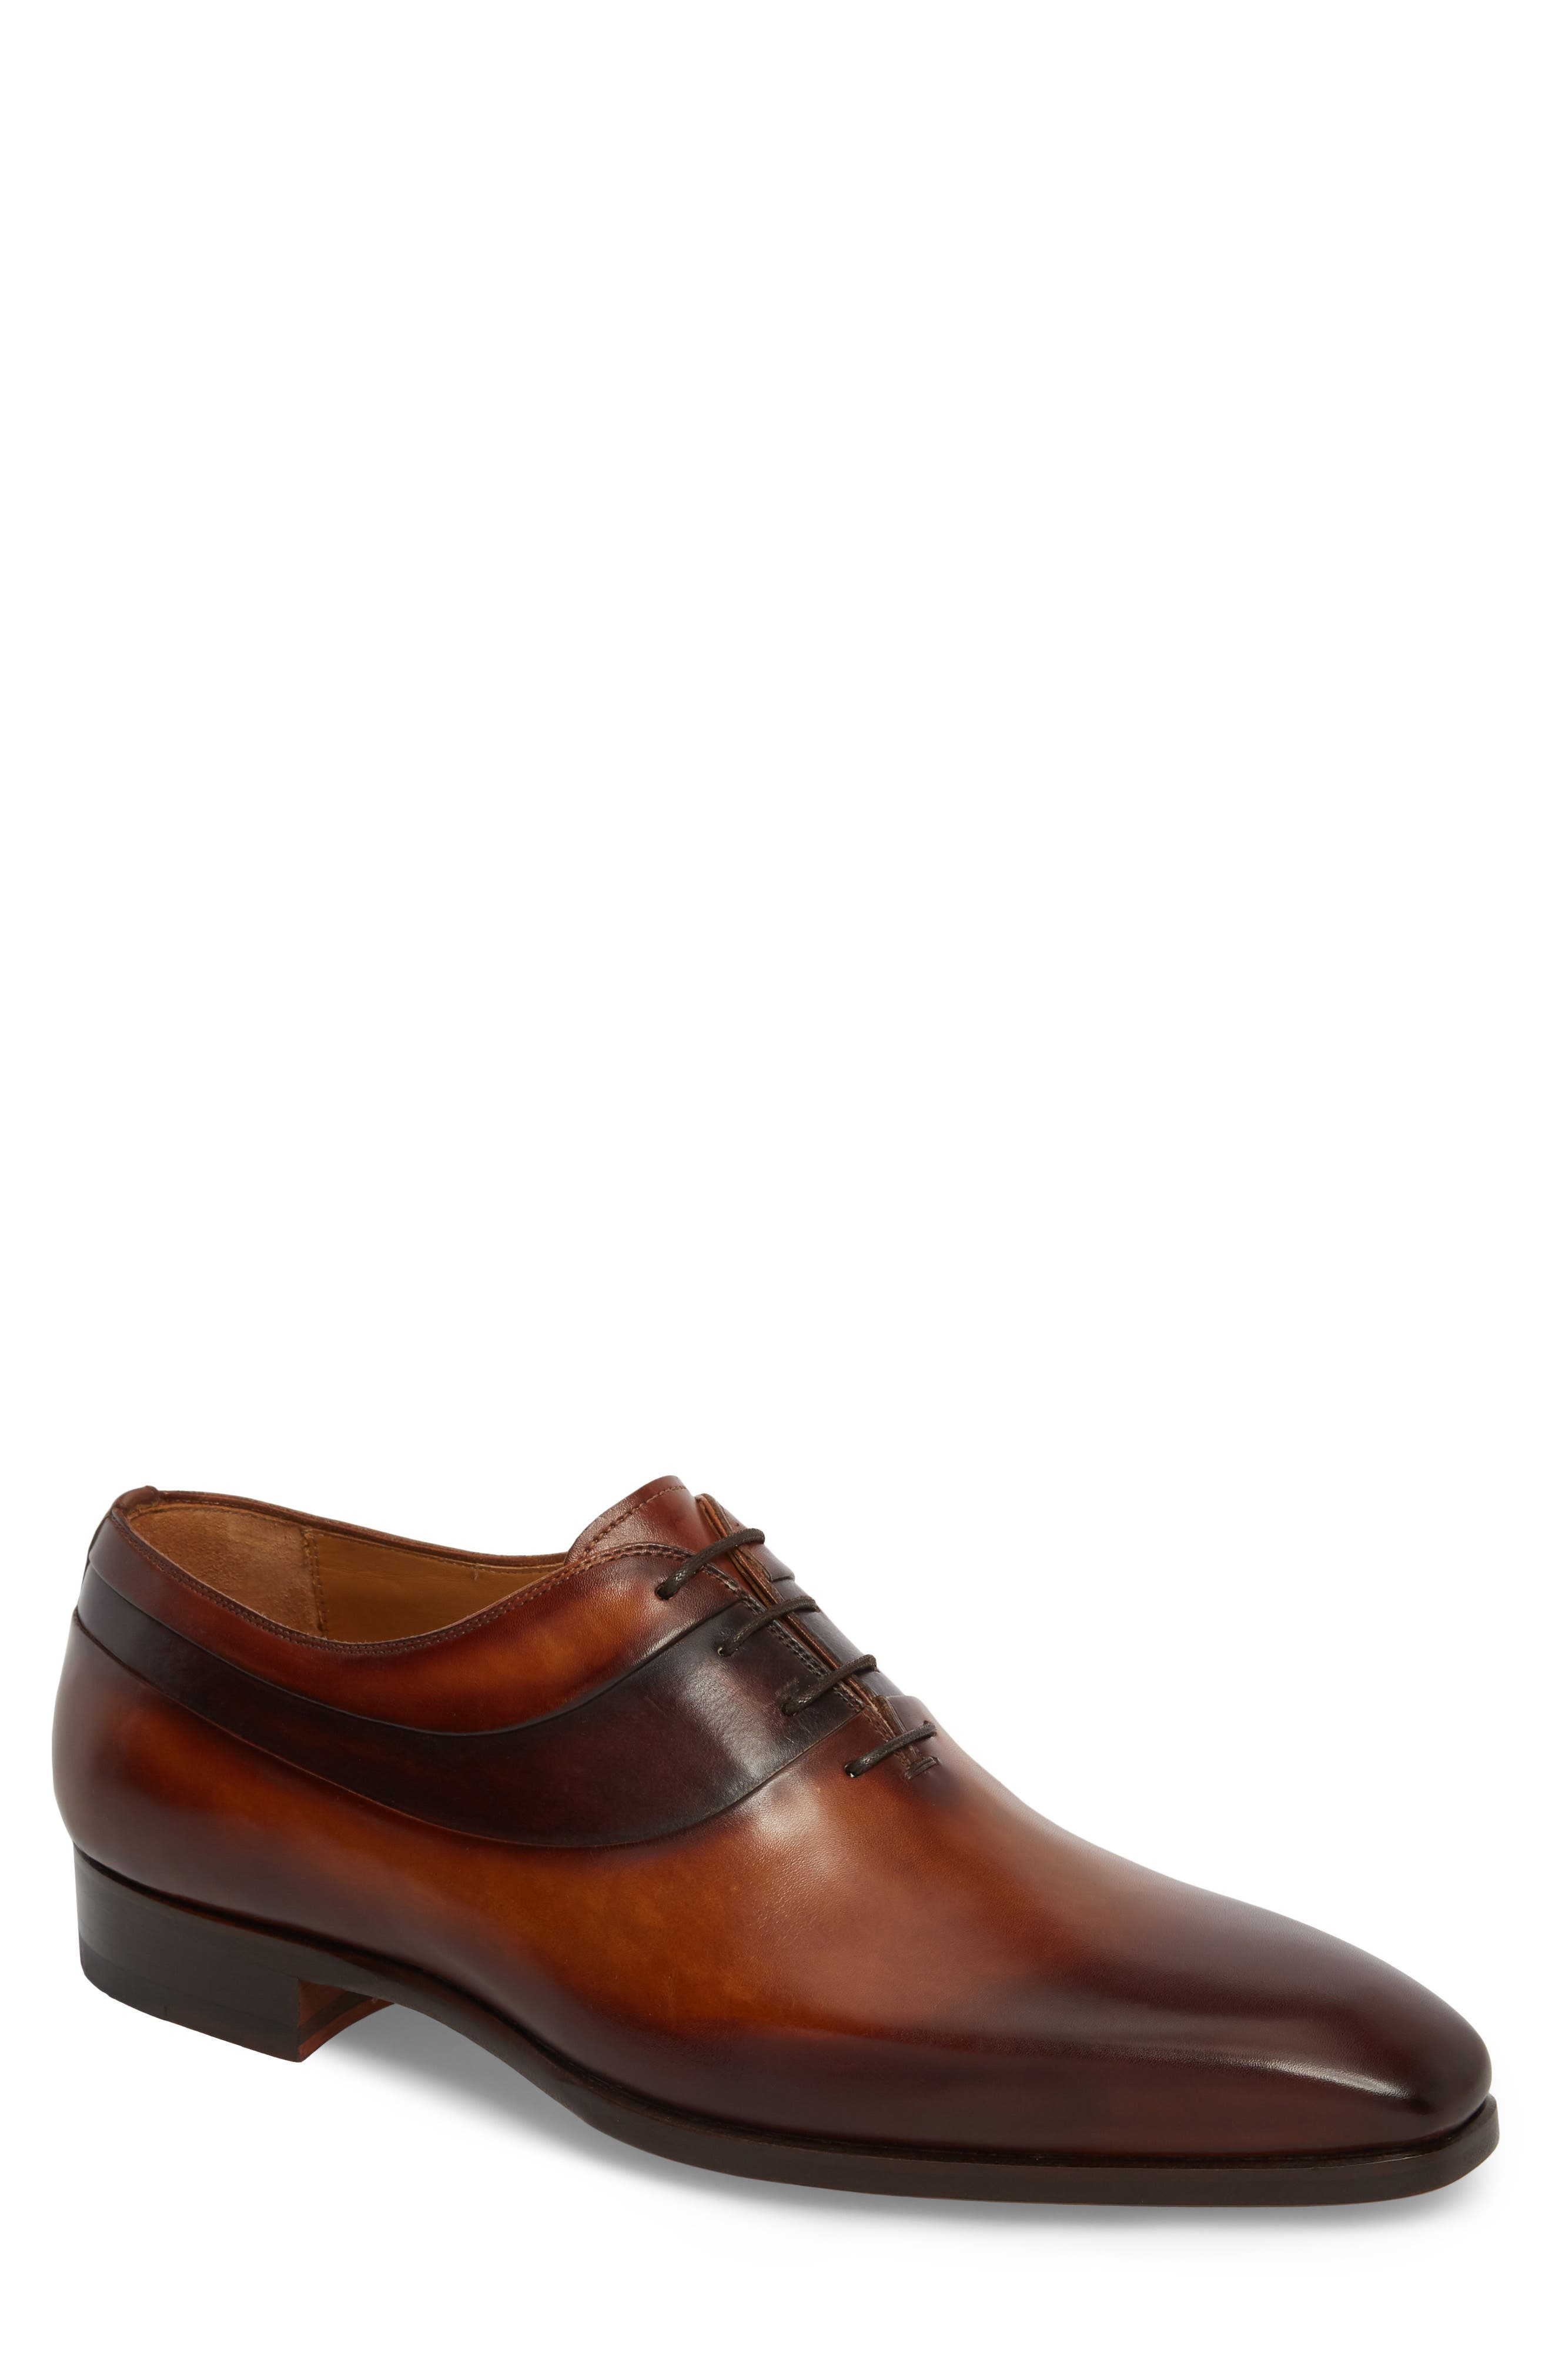 Miles Plain Toe Oxford,                         Main,                         color, Brown Leather